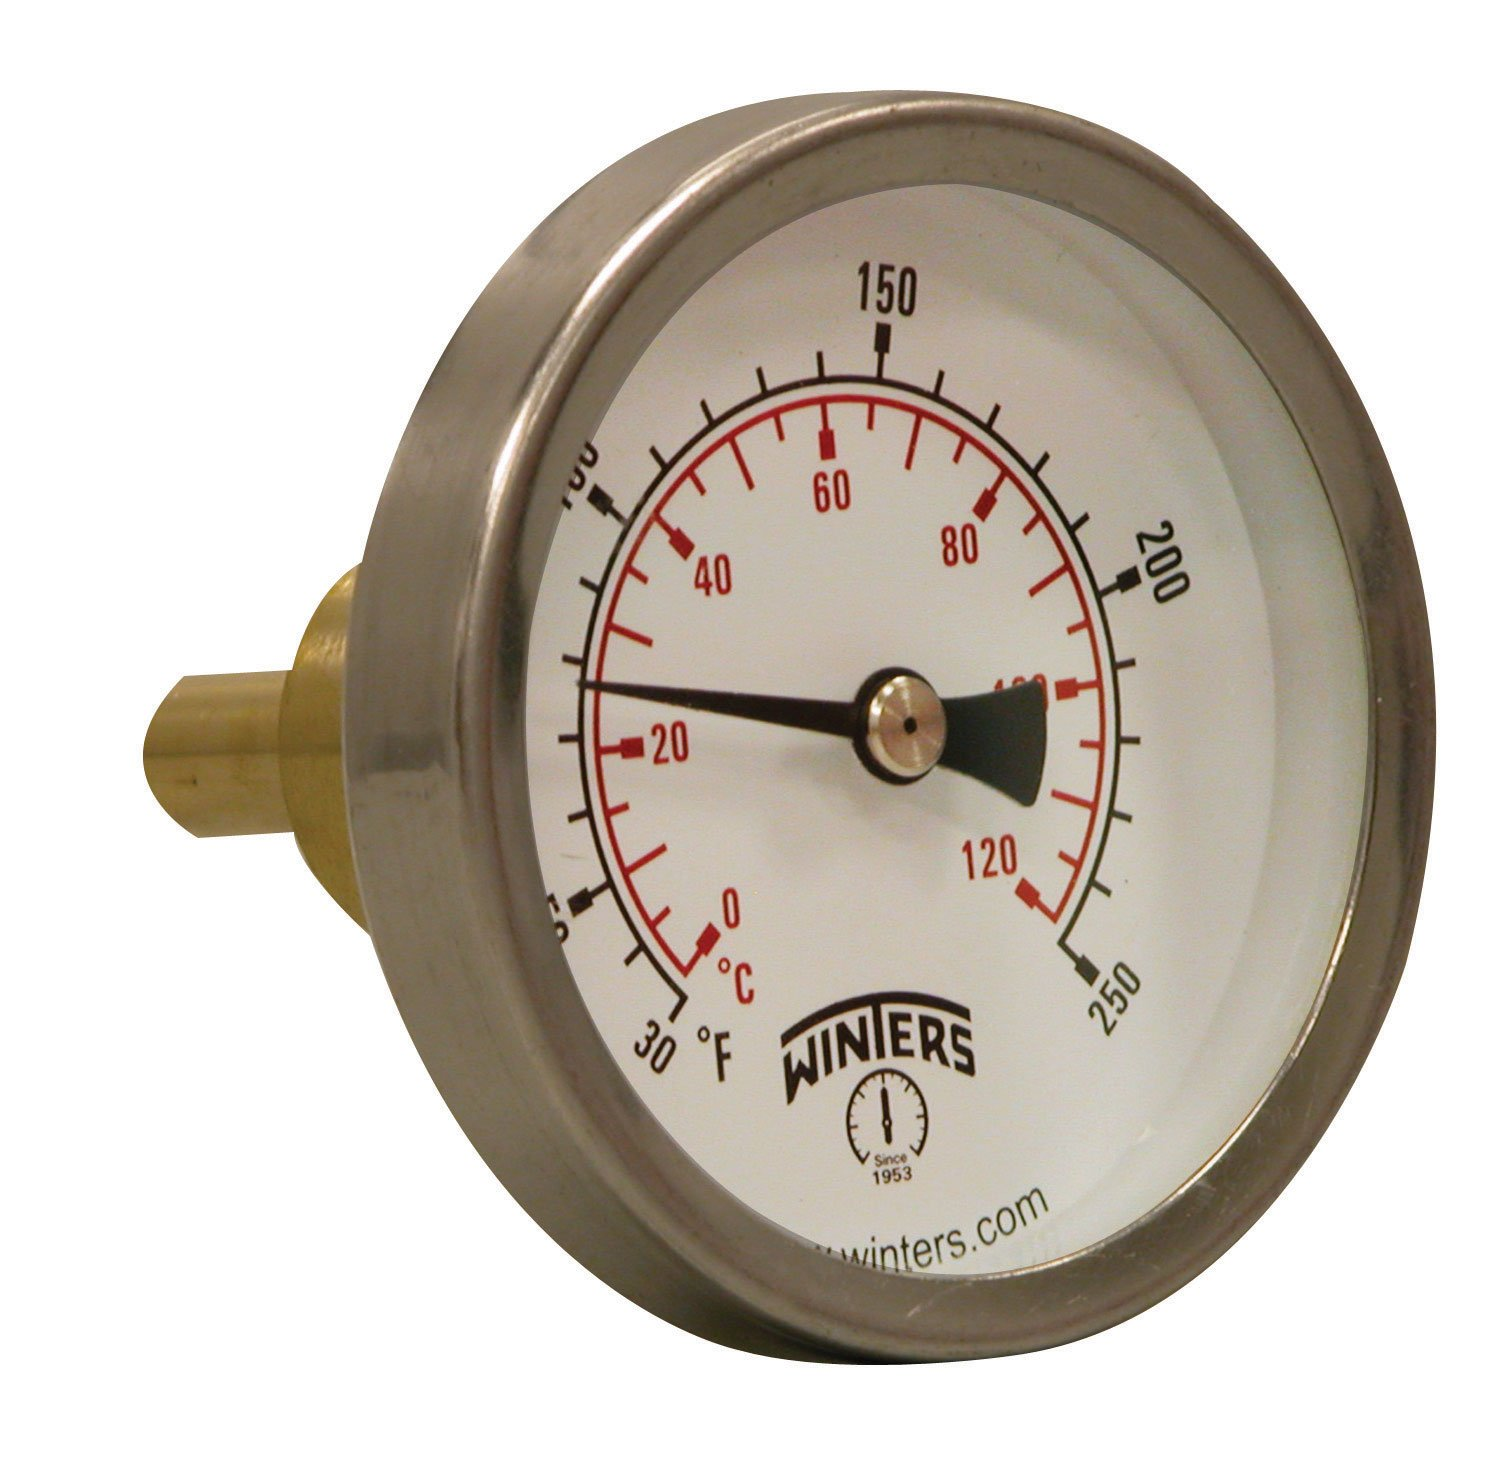 Winters TSW Series Aluminum Dual Scale Hot Water Thermometer, Dial Type, 2-1/2' Dial, 3/4' Sweatwell, 30-250 F/C Range 2-1/2 Dial 3/4 Sweatwell TSW174-SW